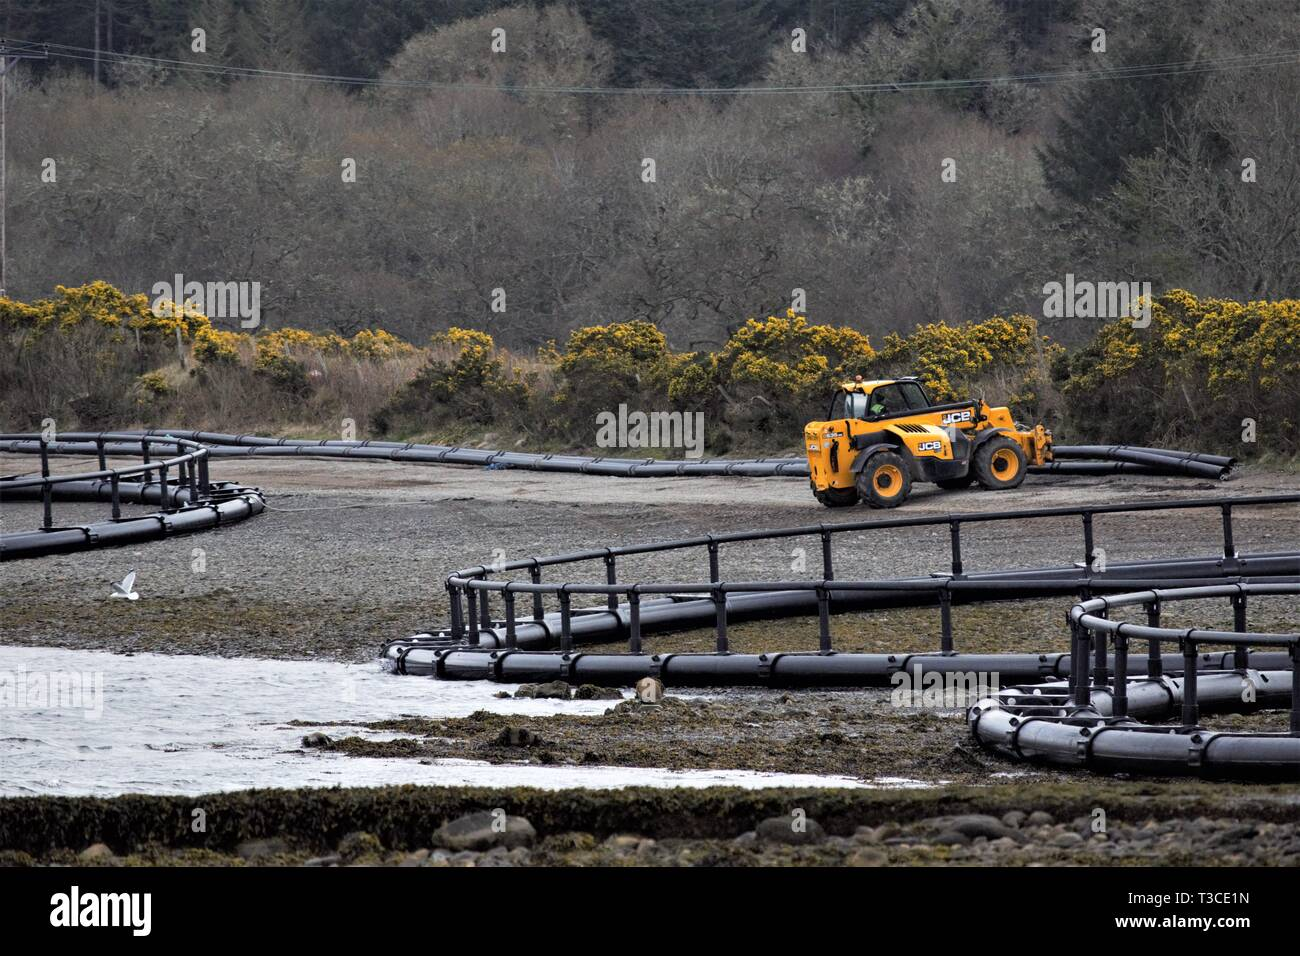 Construction of Fusion Marine, HDPE, floating, salmon fish pen cages on the shores of Loch Creran. Golden blooms of whins in the background. Stock Photo